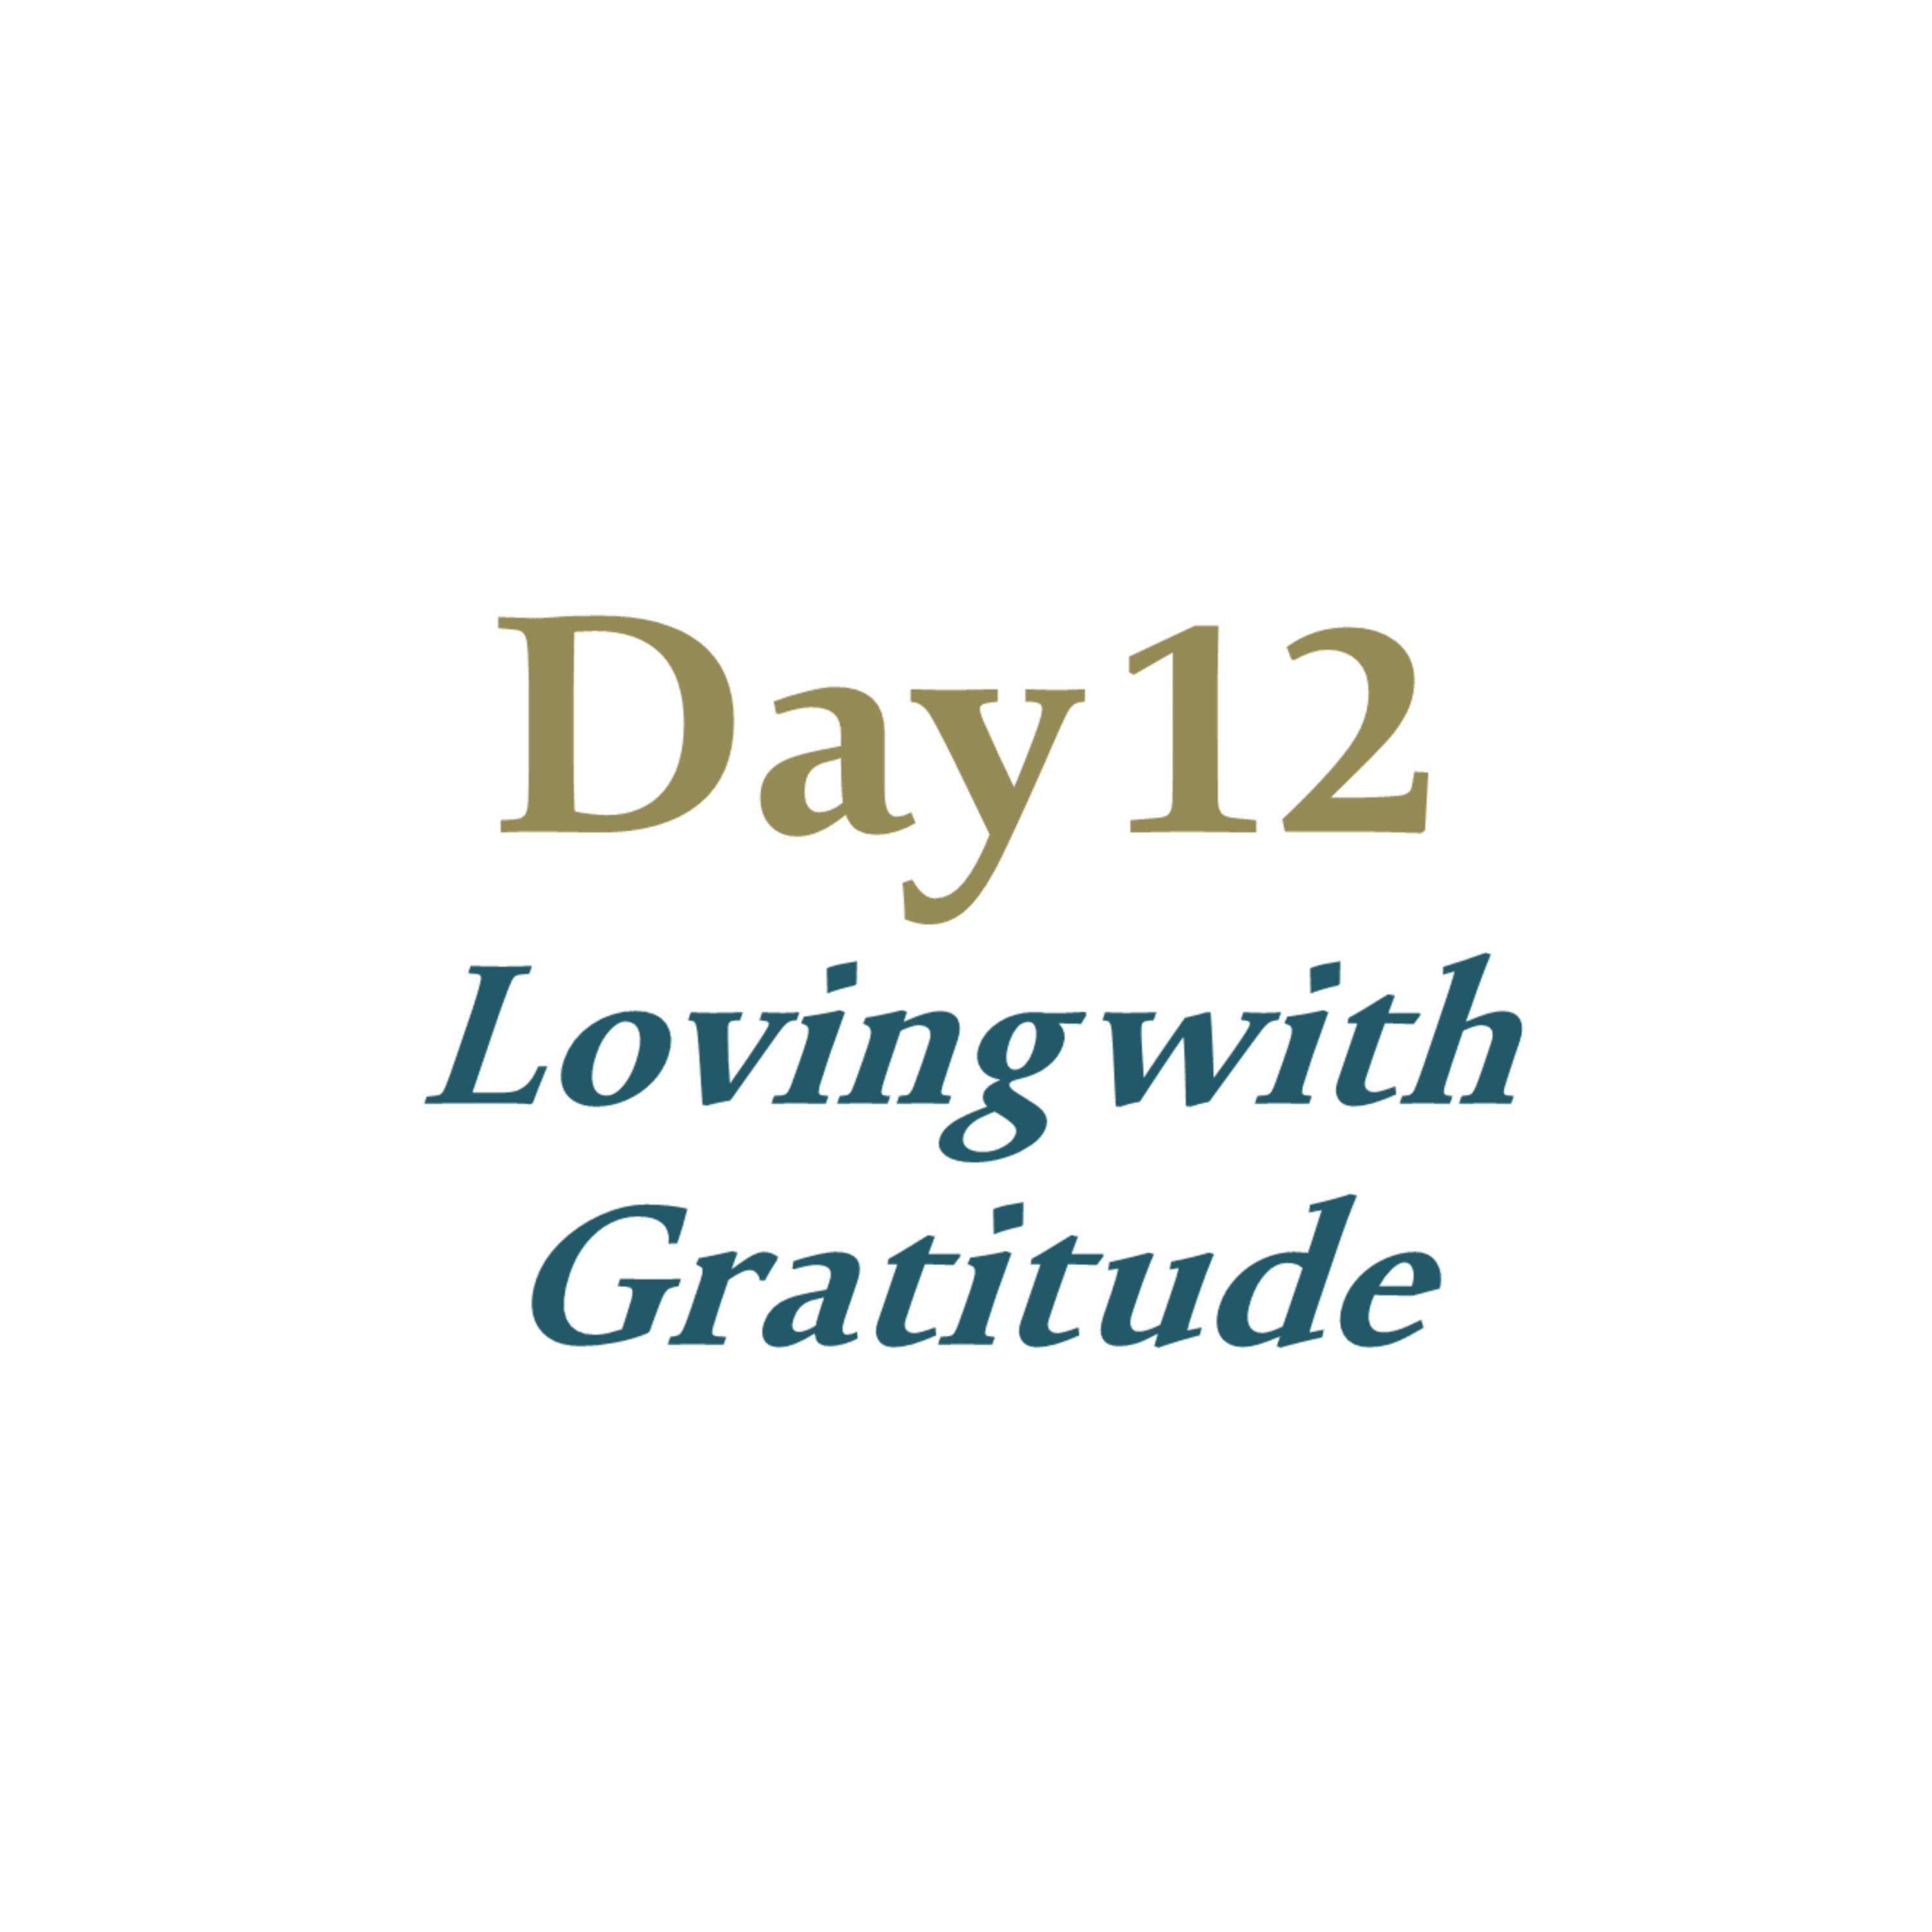 Day 12 - Loving with Gratitude